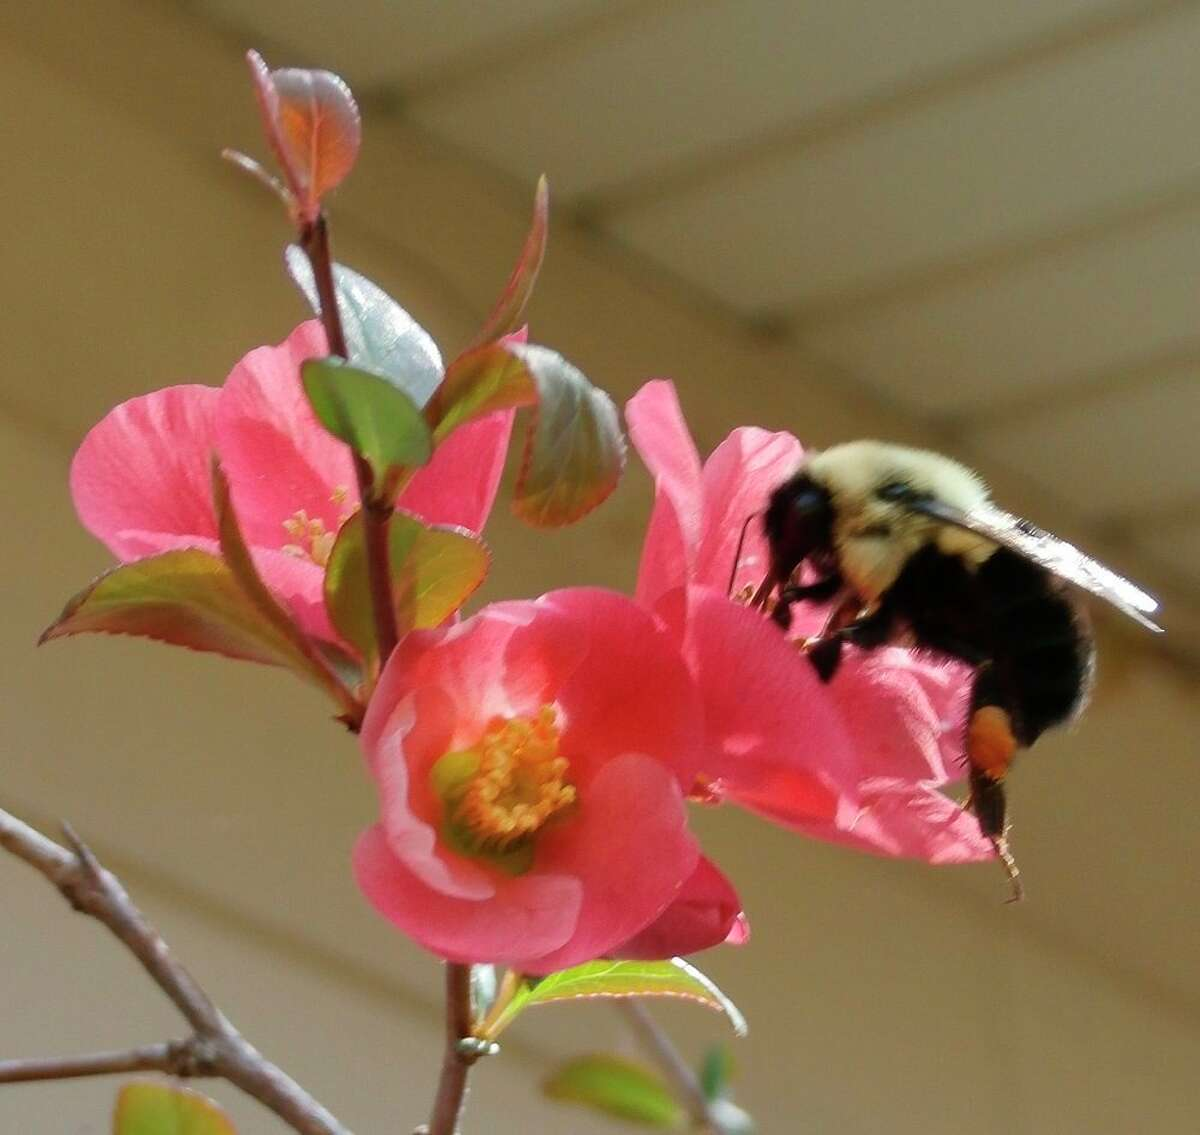 A bee lands on a Quince blossom. (Photo Provided)